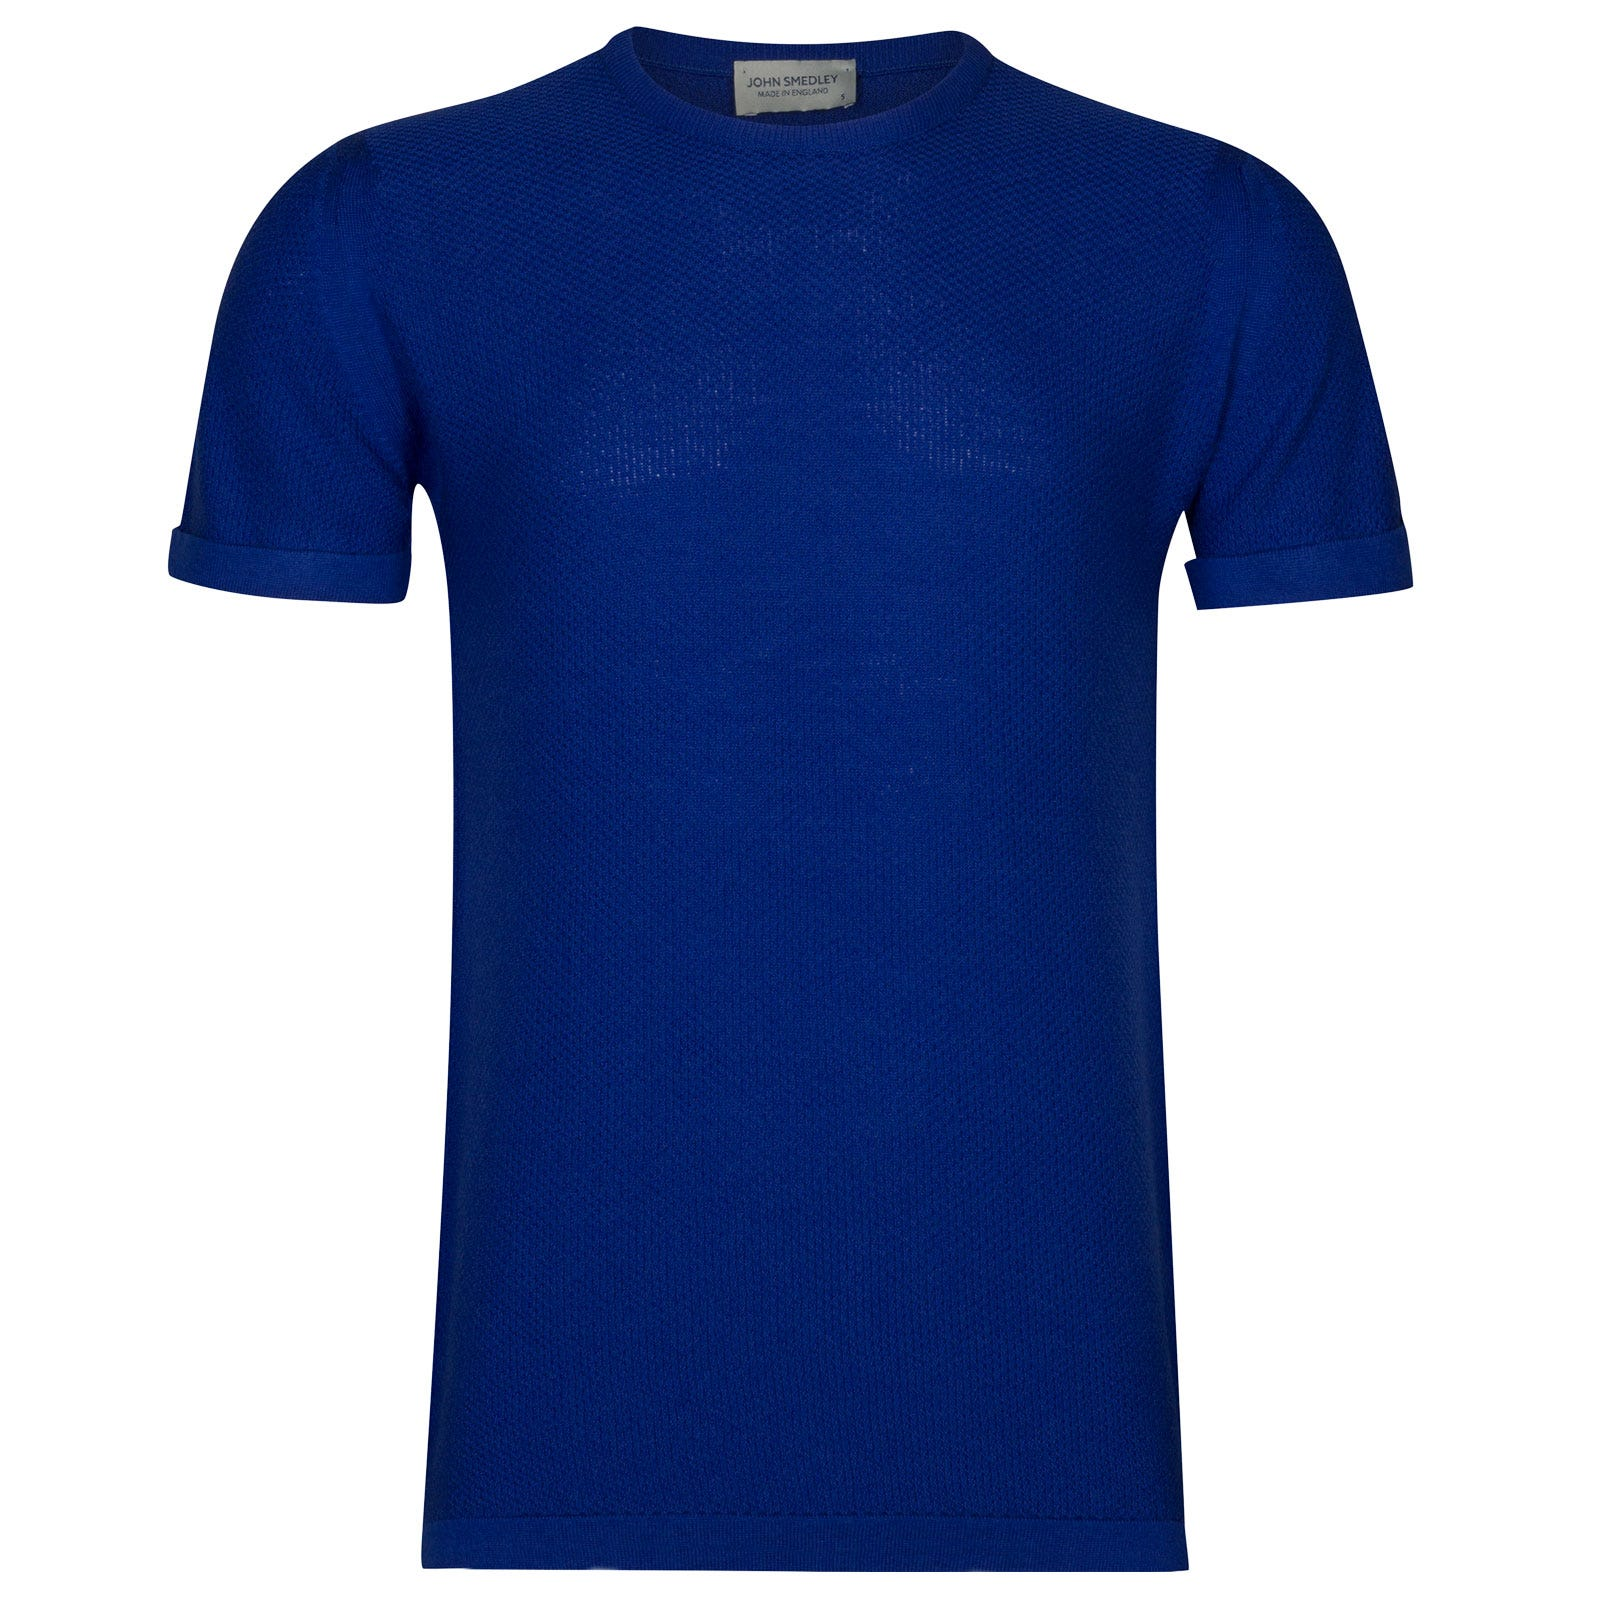 John Smedley 2Singular Merino Wool T-Shirt in Coniston Blue-S